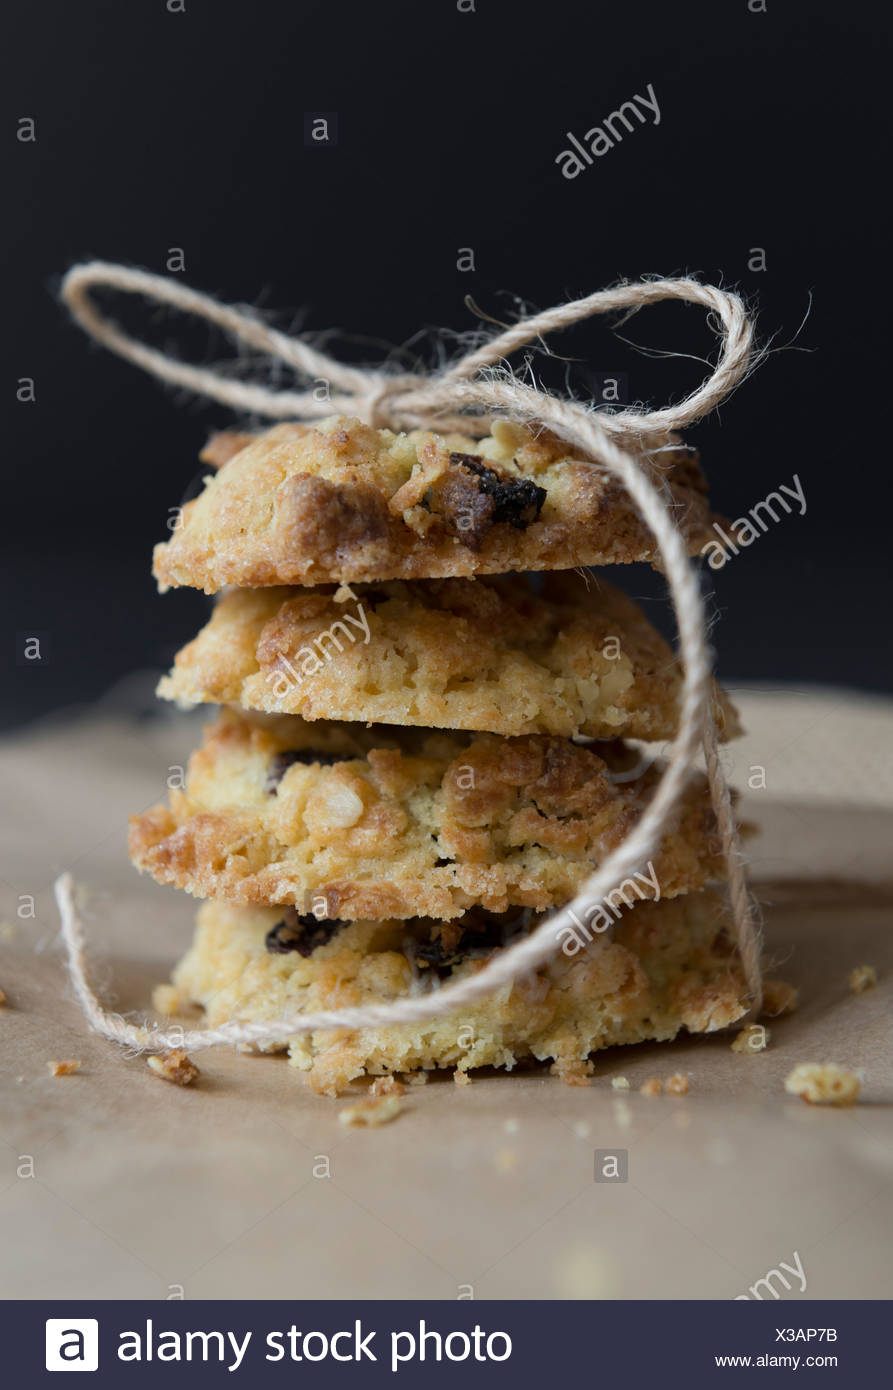 Sultana and oat cookies, homemade and tied ith string. - Stock Image